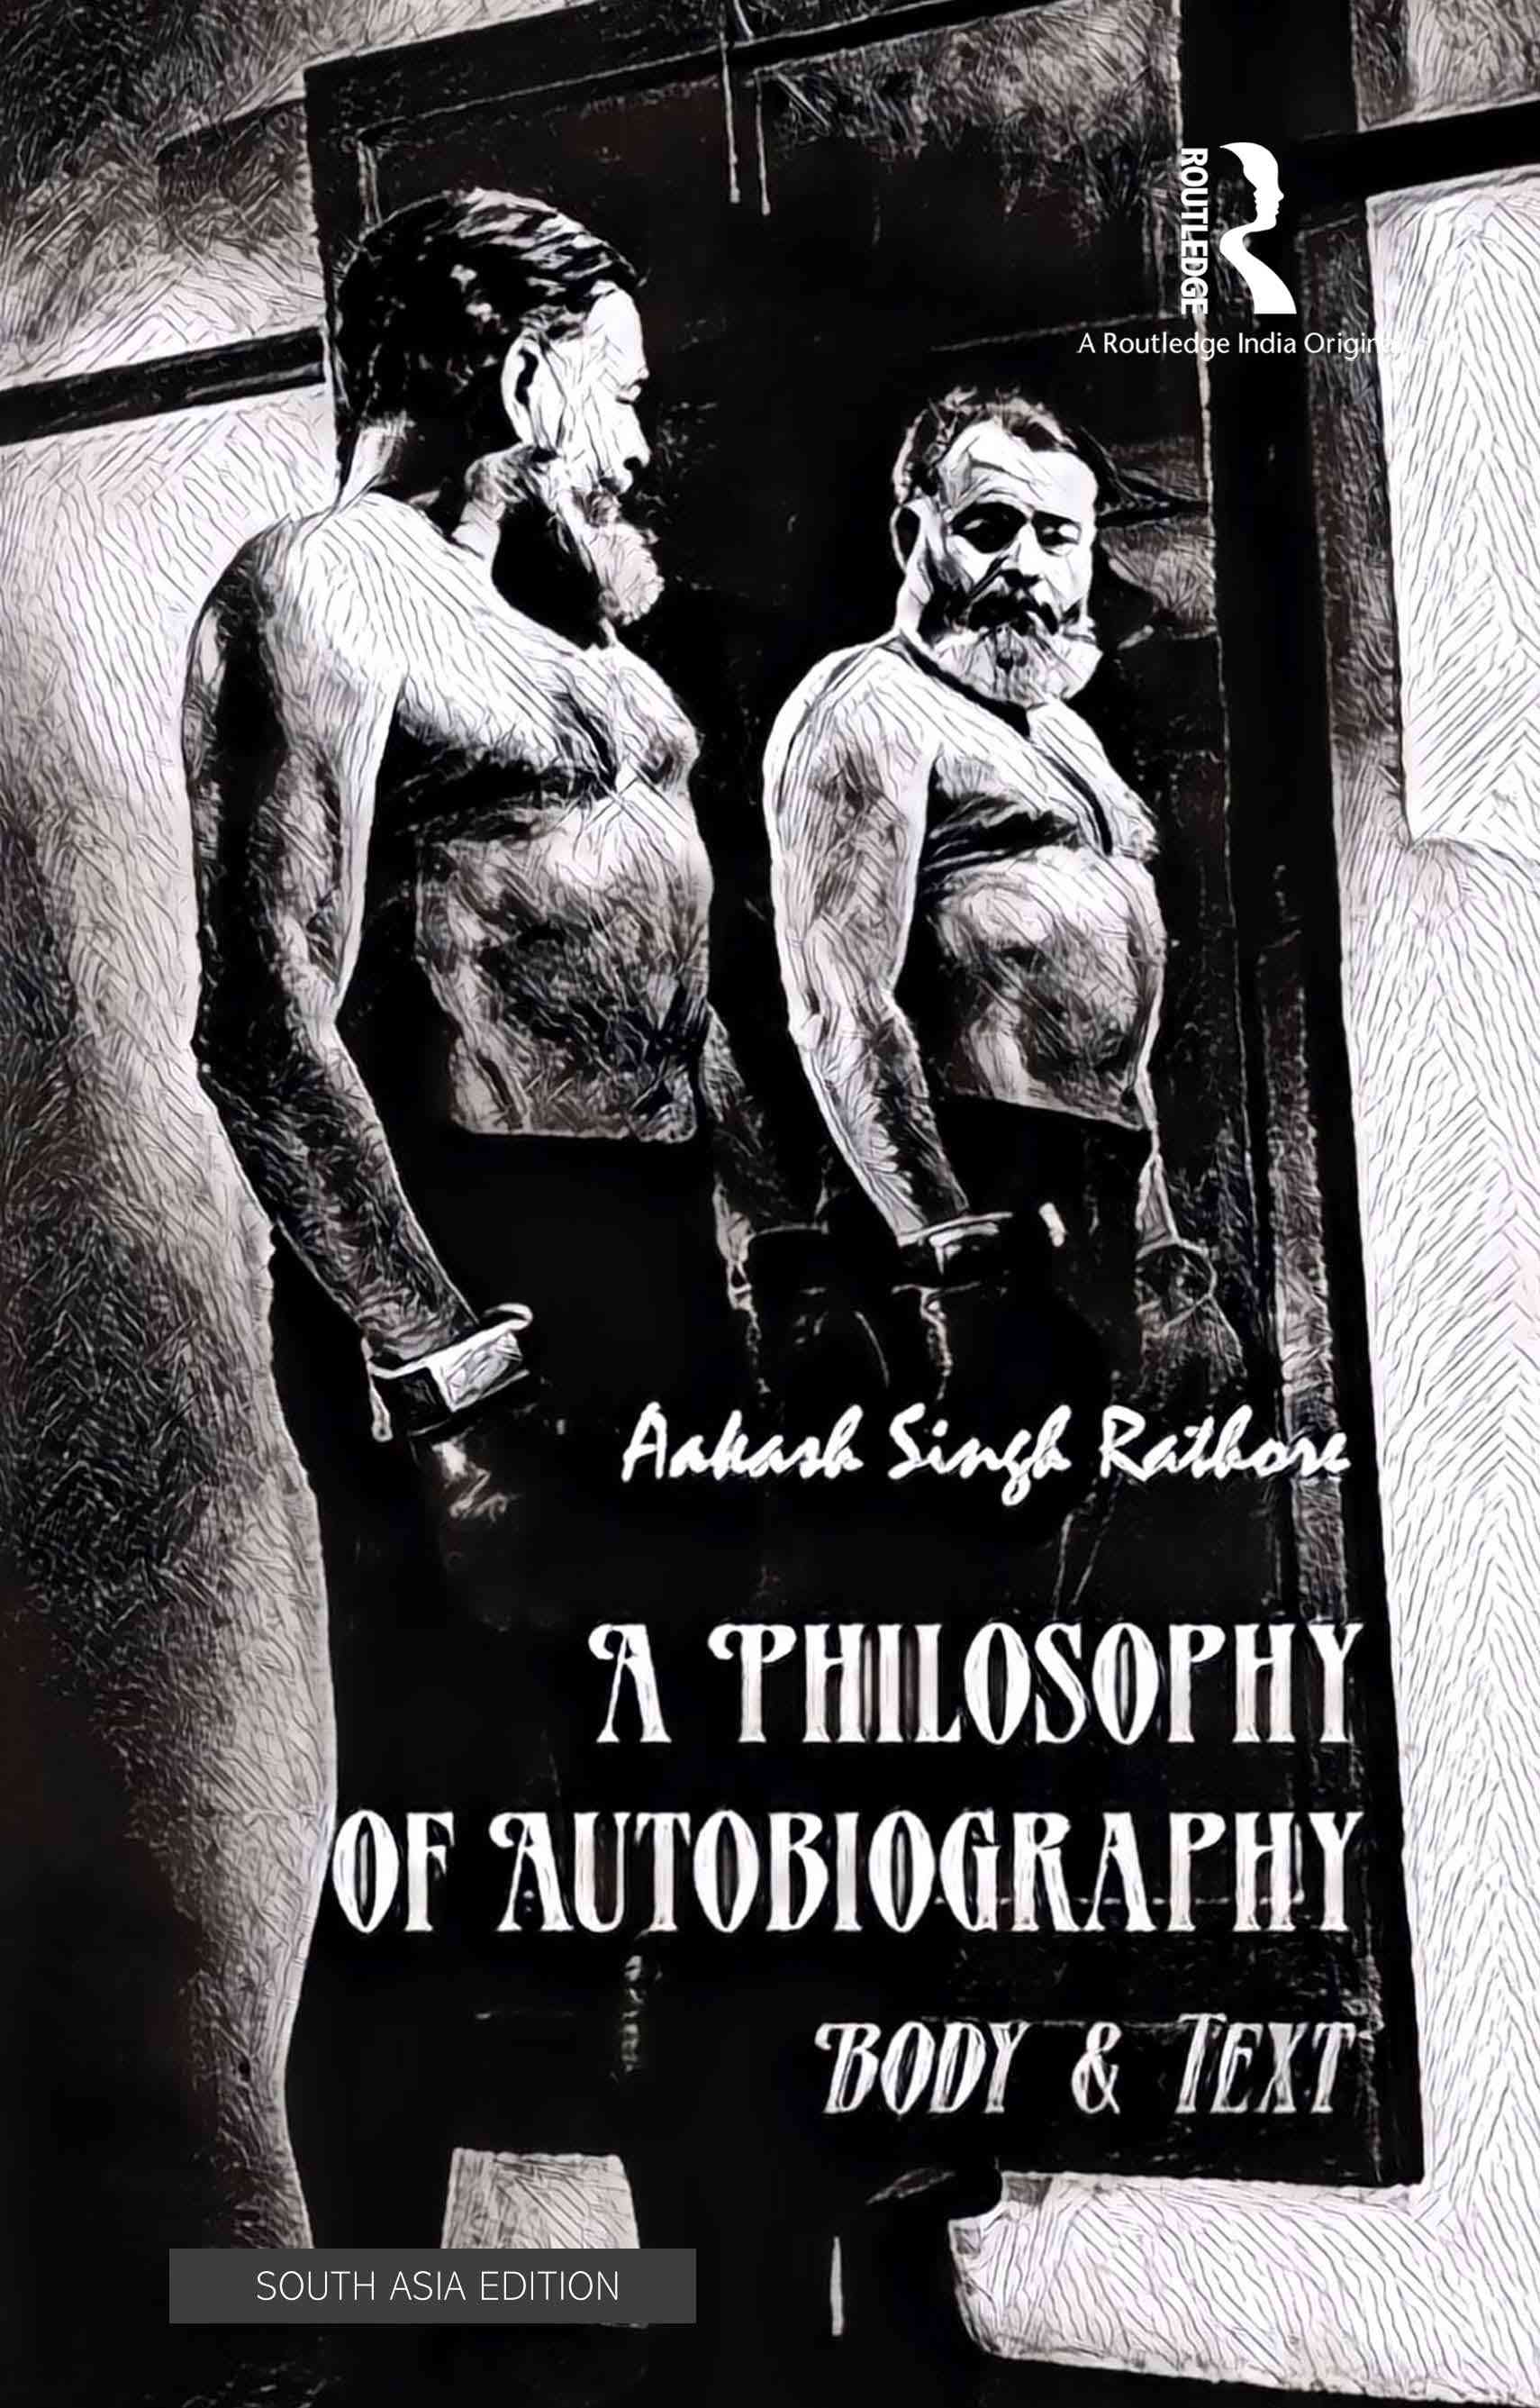 'A Philosophy of Autobiography' by Aakash Singh Rathore